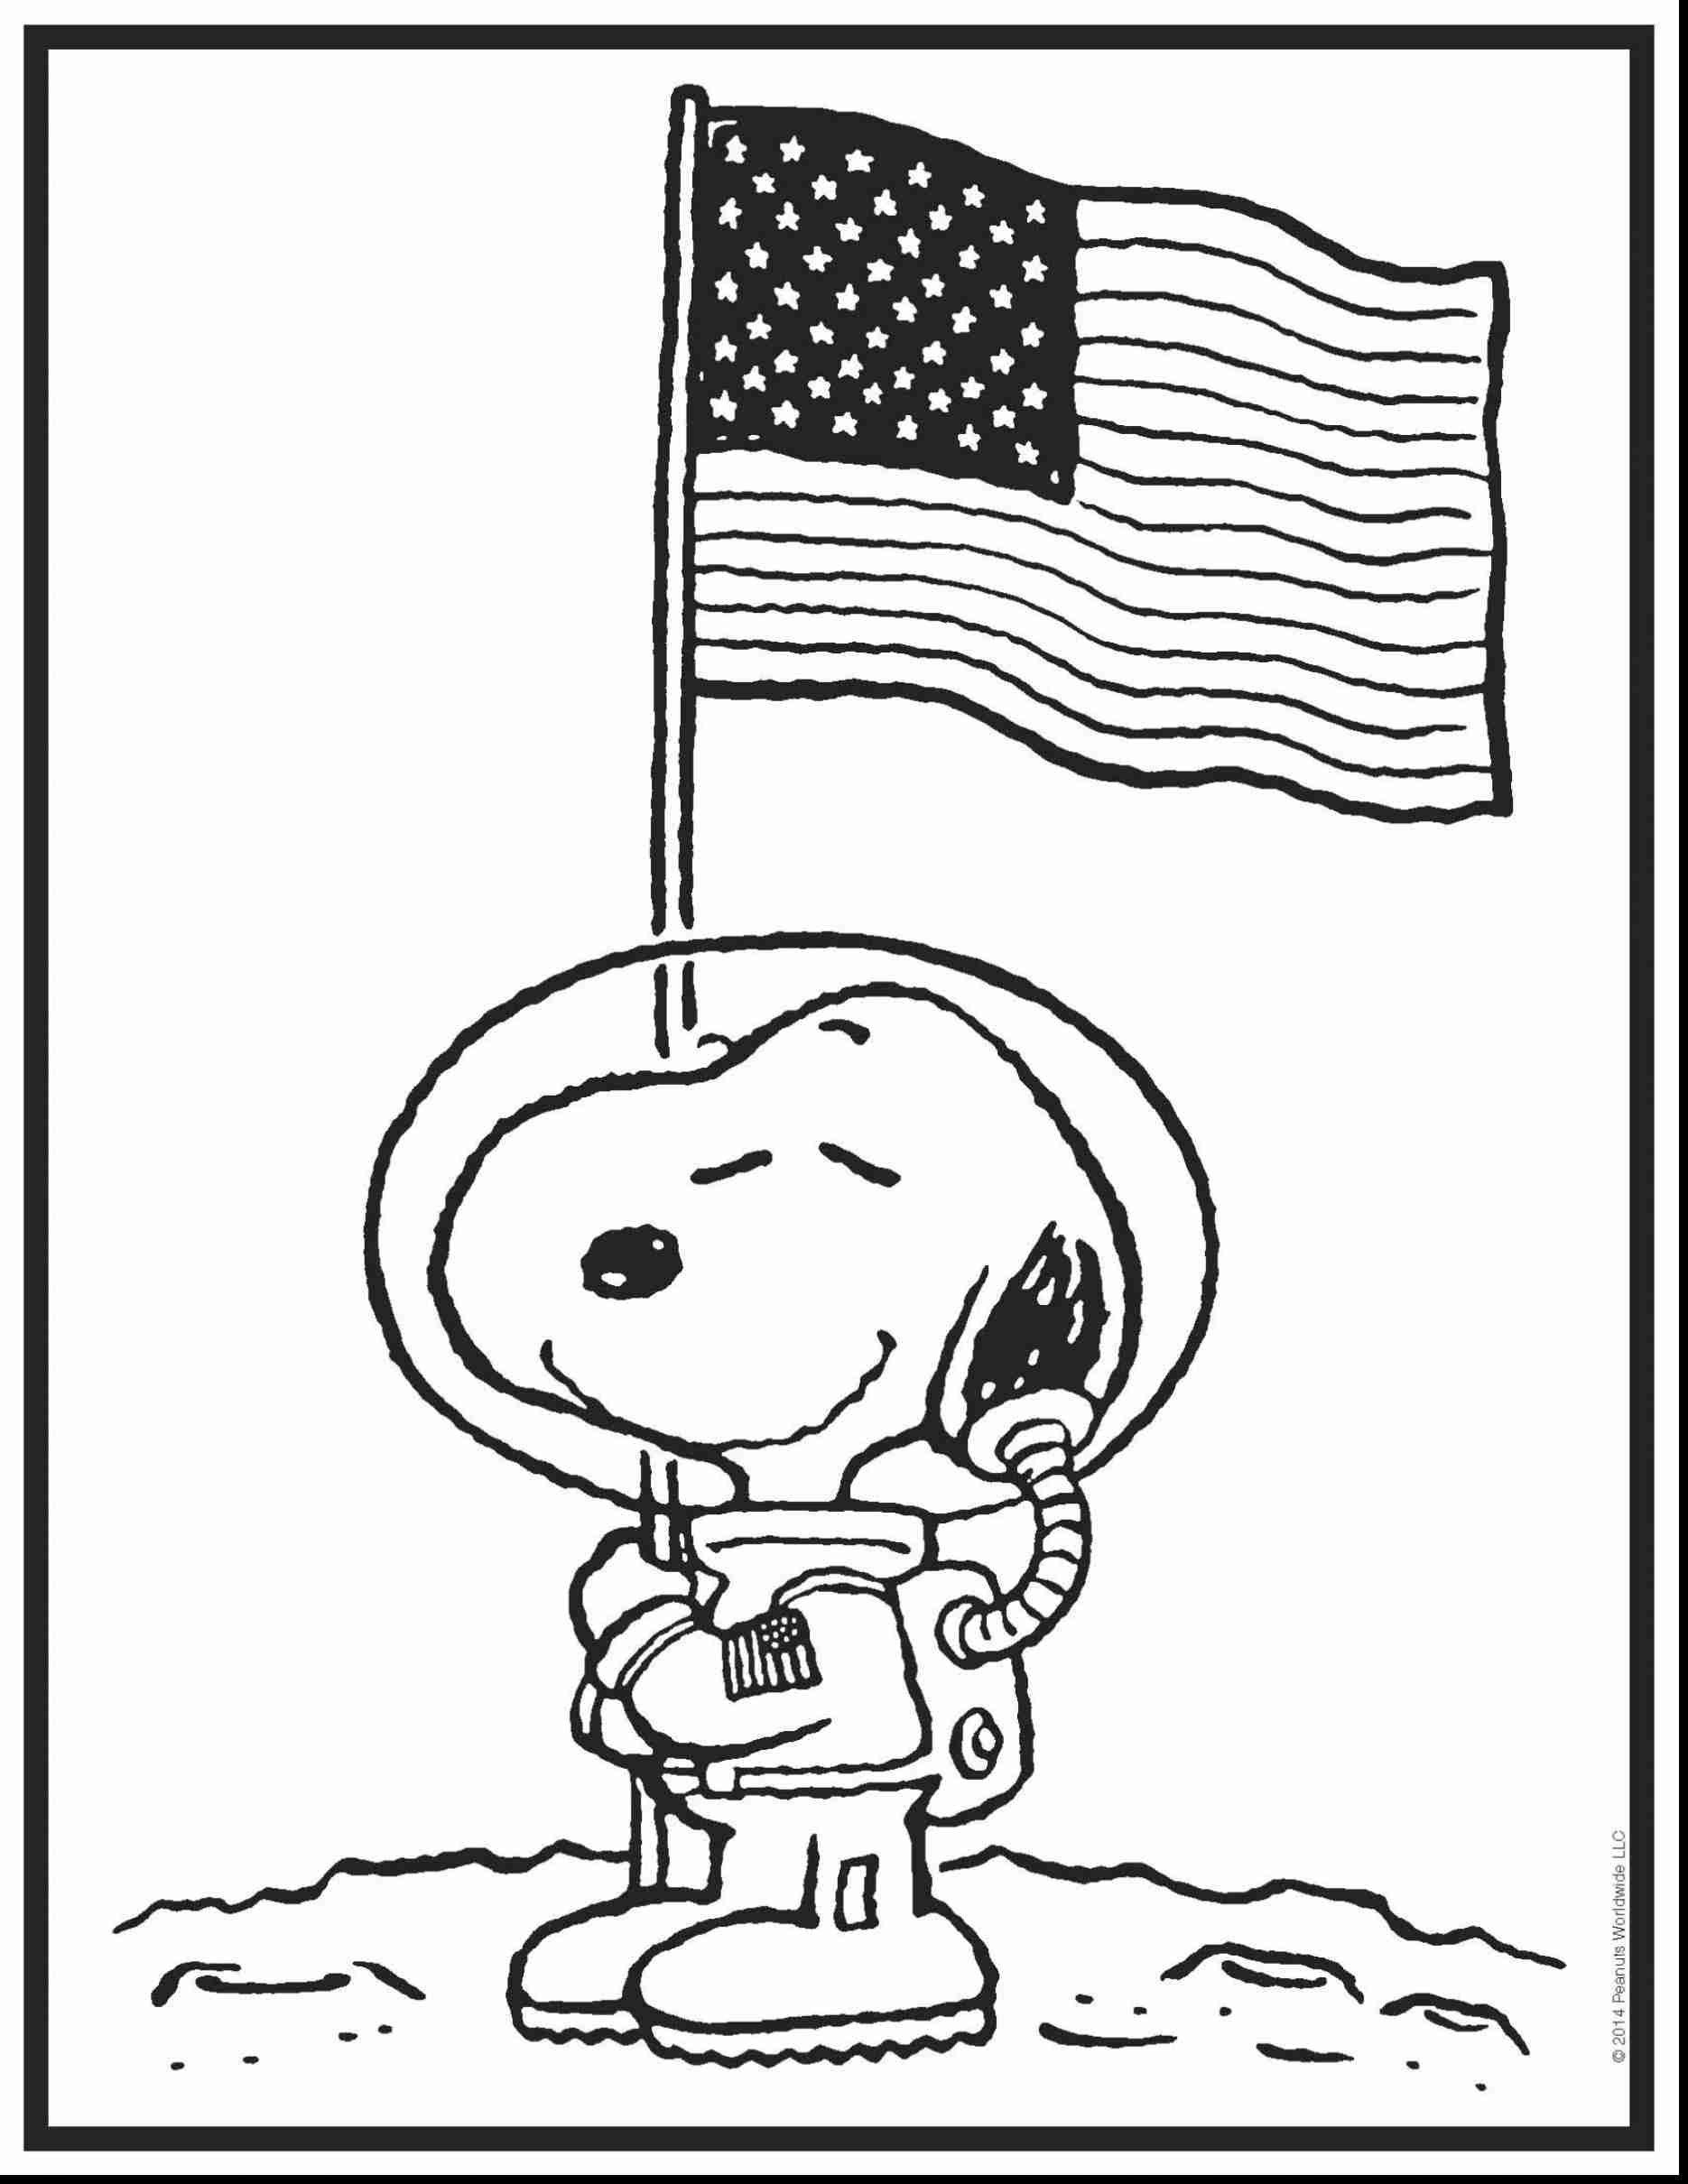 25 Marvelous Photo Of Peanuts Coloring Pages Davemelillo Com Snoopy Valentine Valentine Coloring Pages Snoopy Coloring Pages